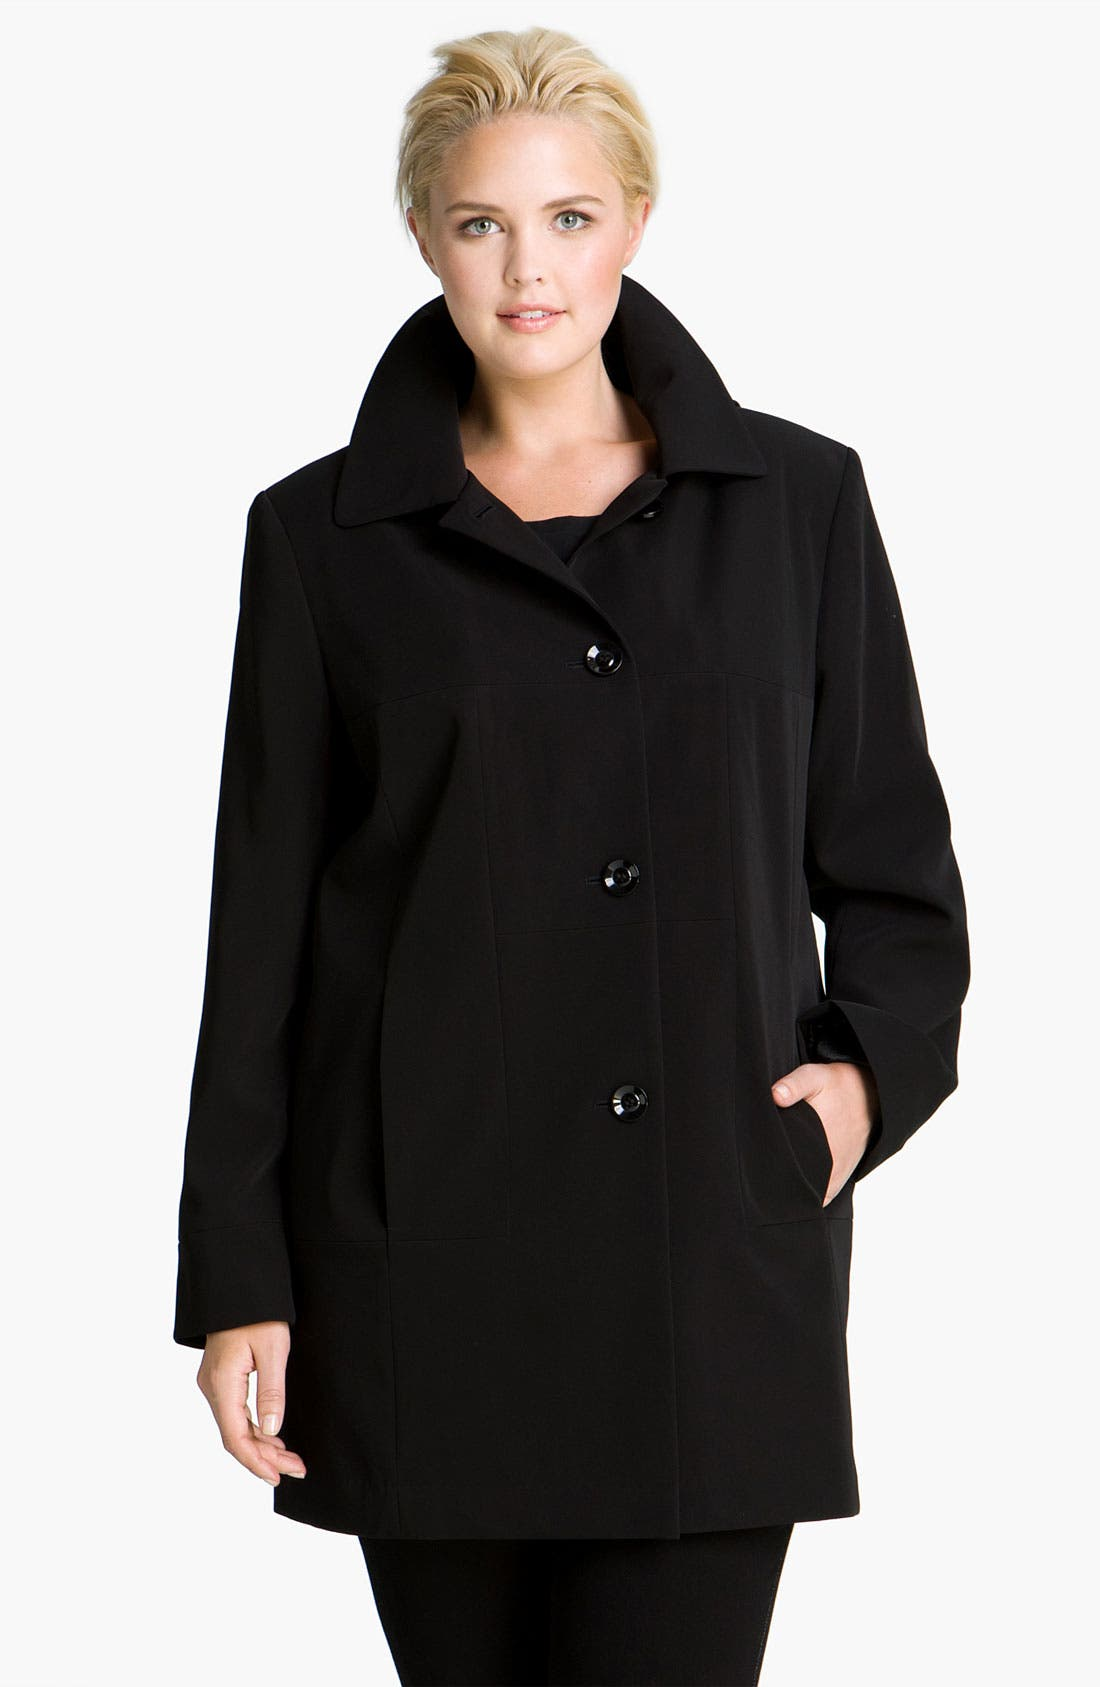 Main Image - Gallery Club Collar Coat with Detachable Liner (Plus)